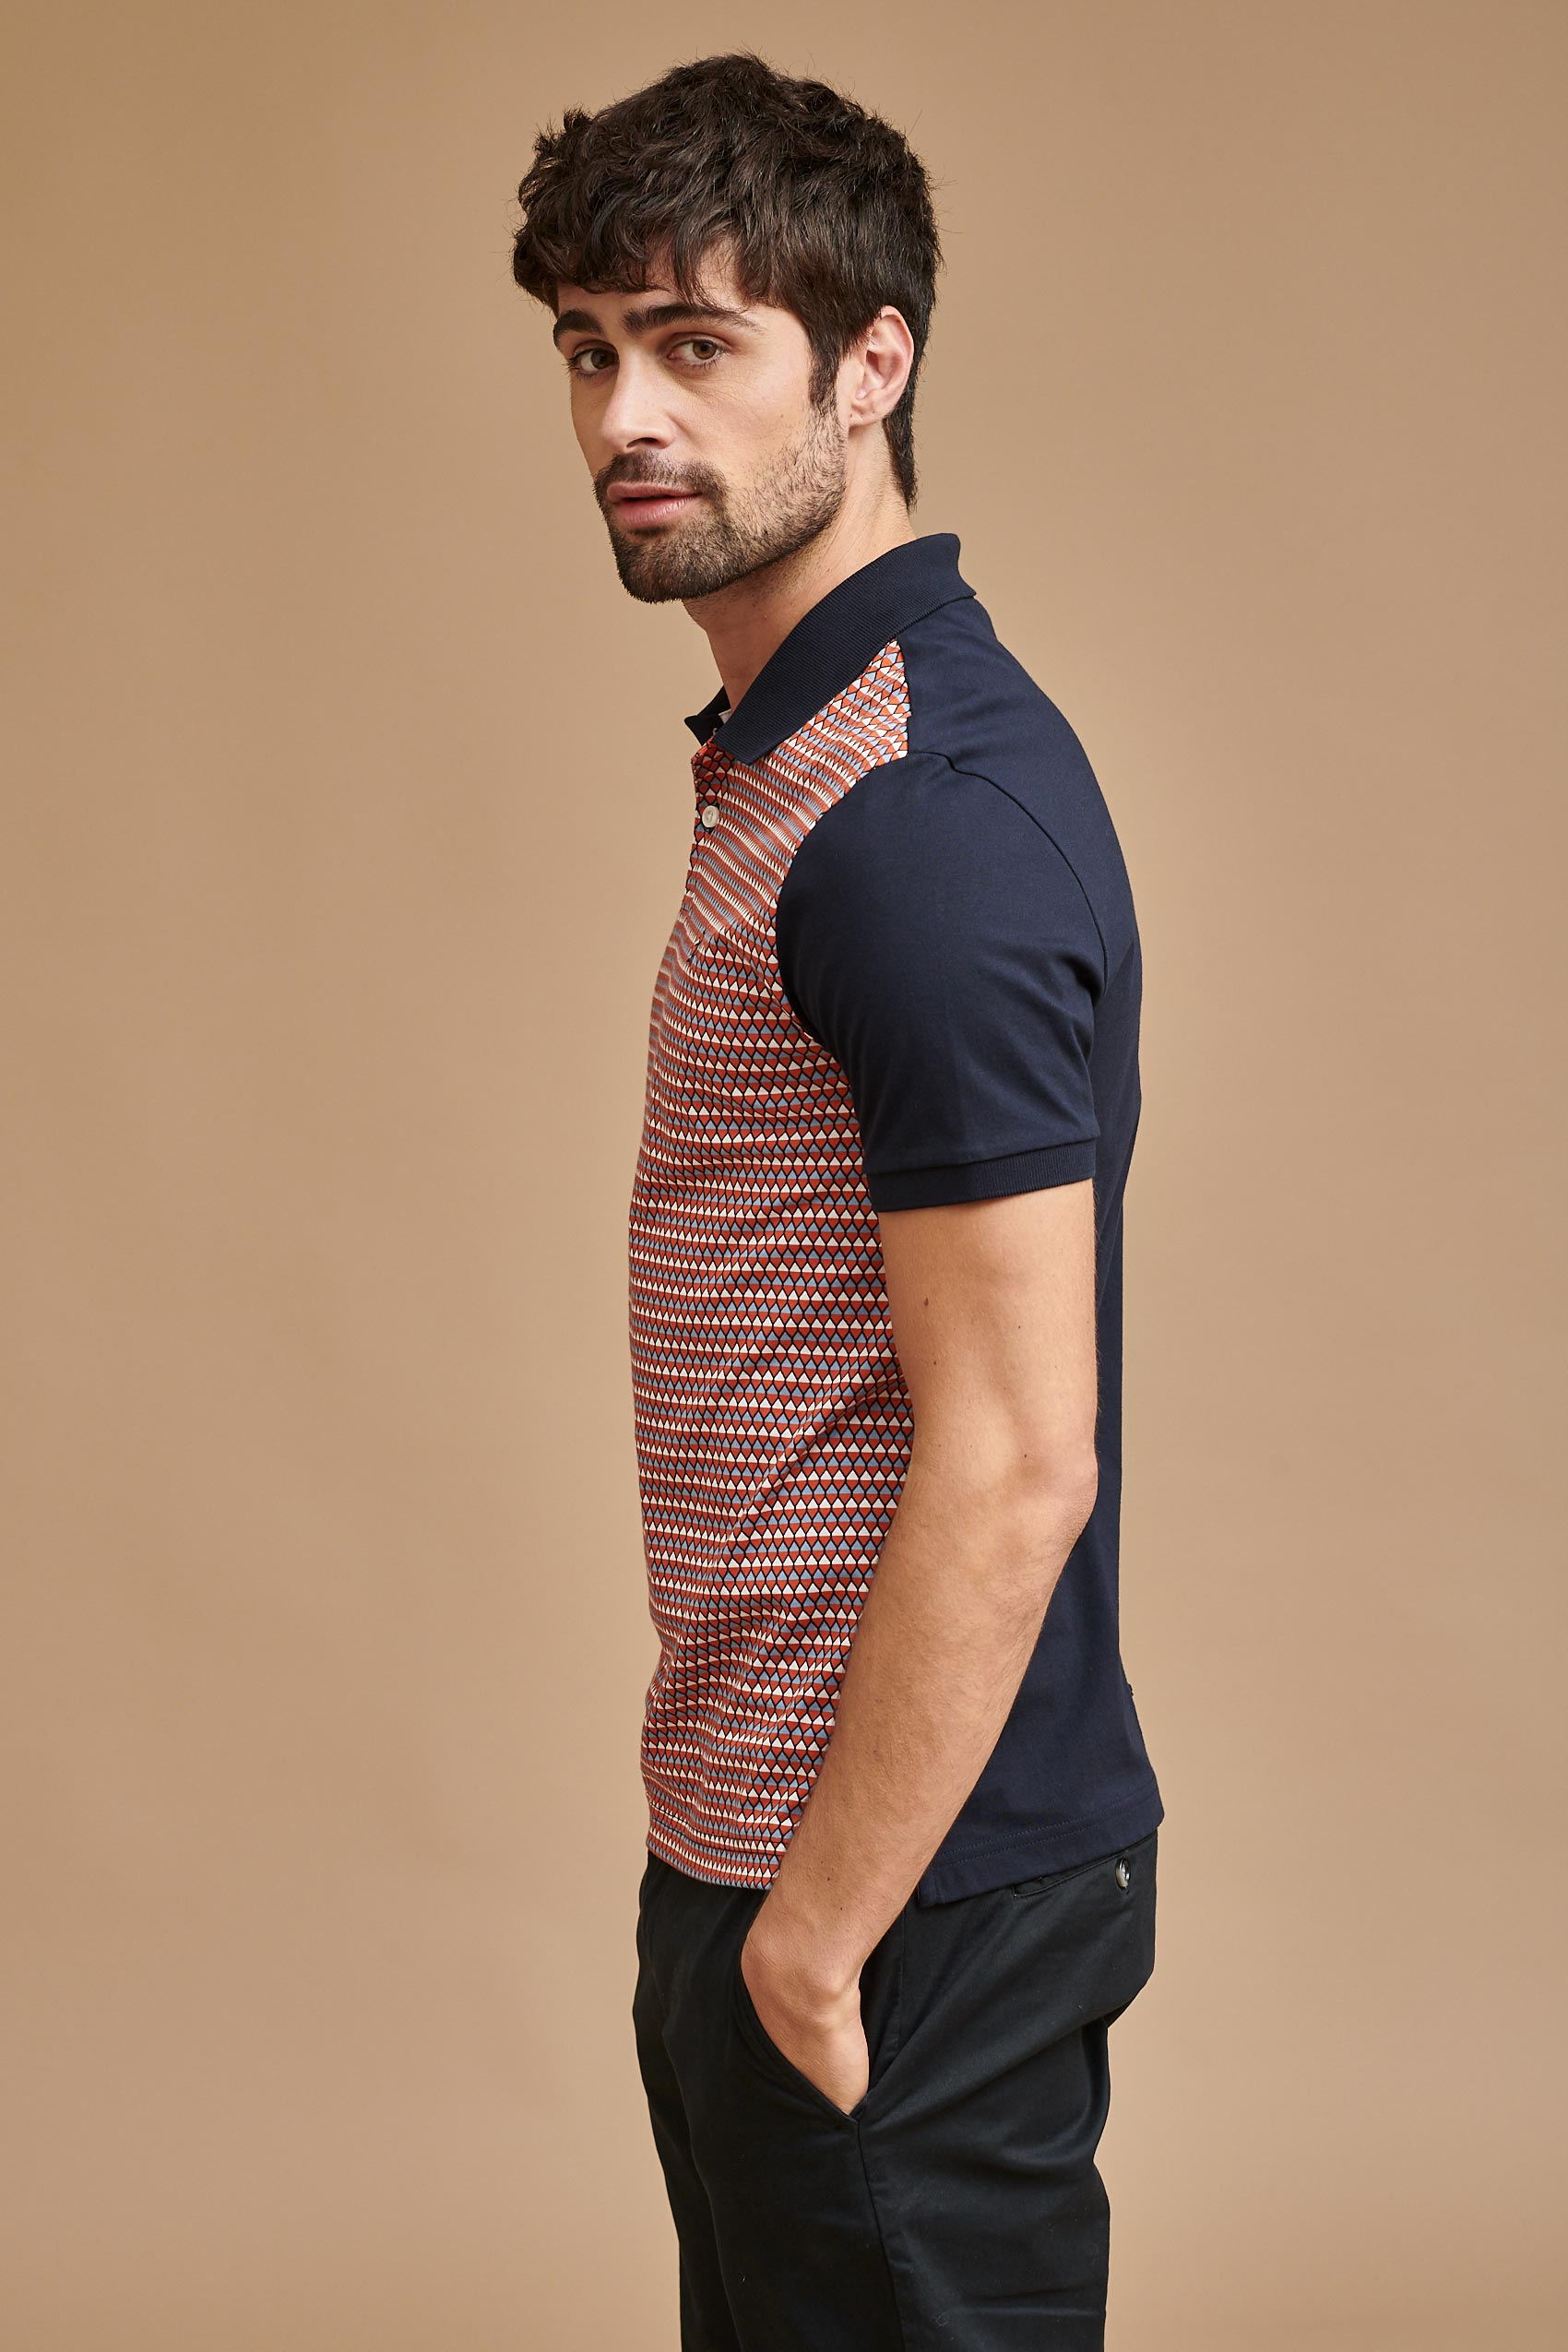 penguin_ss-jacquard-print-polo_28-26-2020__picture-14577